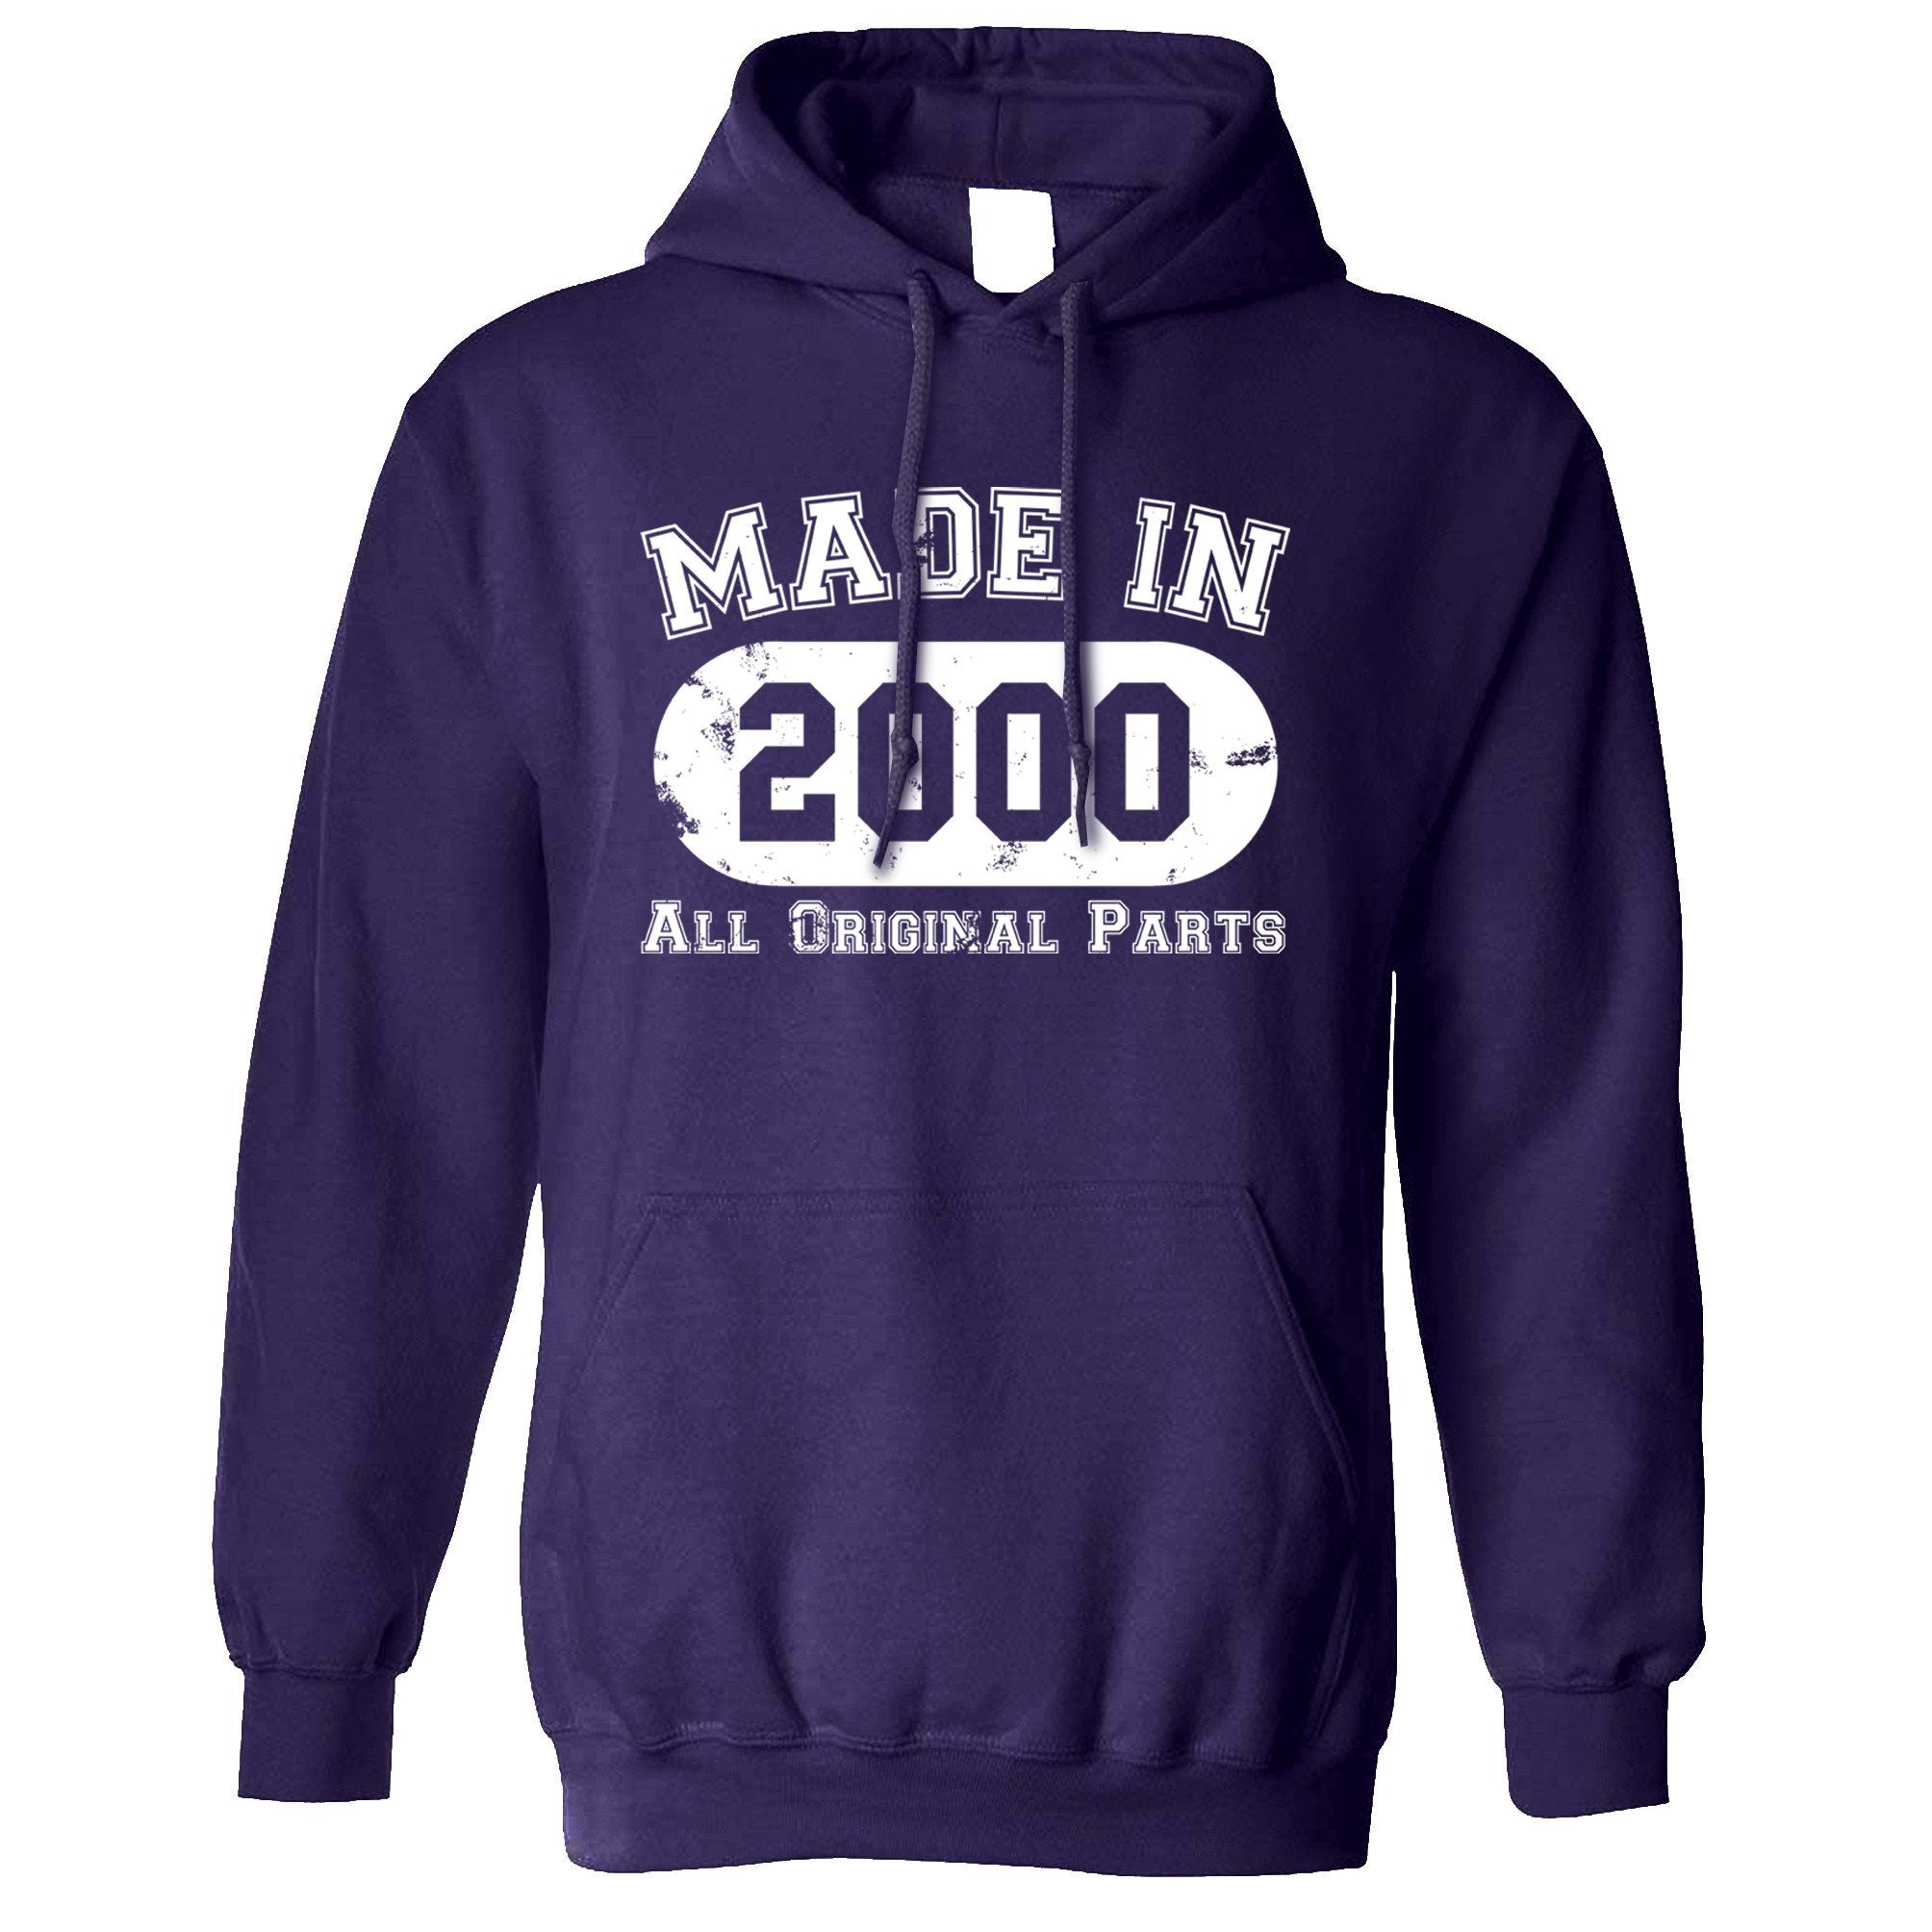 Made in 2000 All Original Parts Hoodie [Distressed]